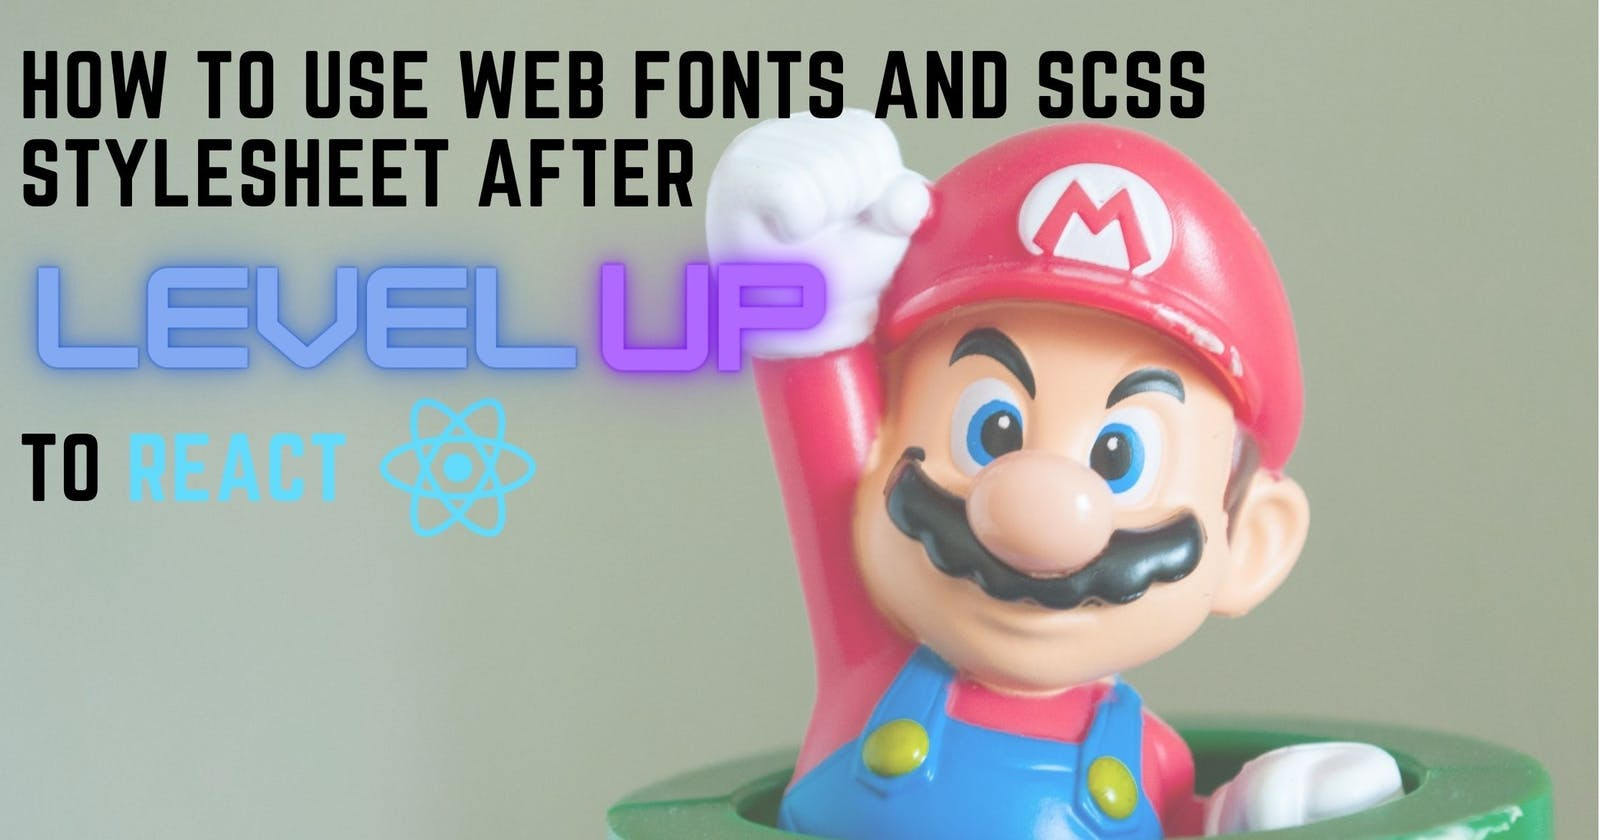 How to use web fonts and SCSS stylesheet after LEVEL UP to React?